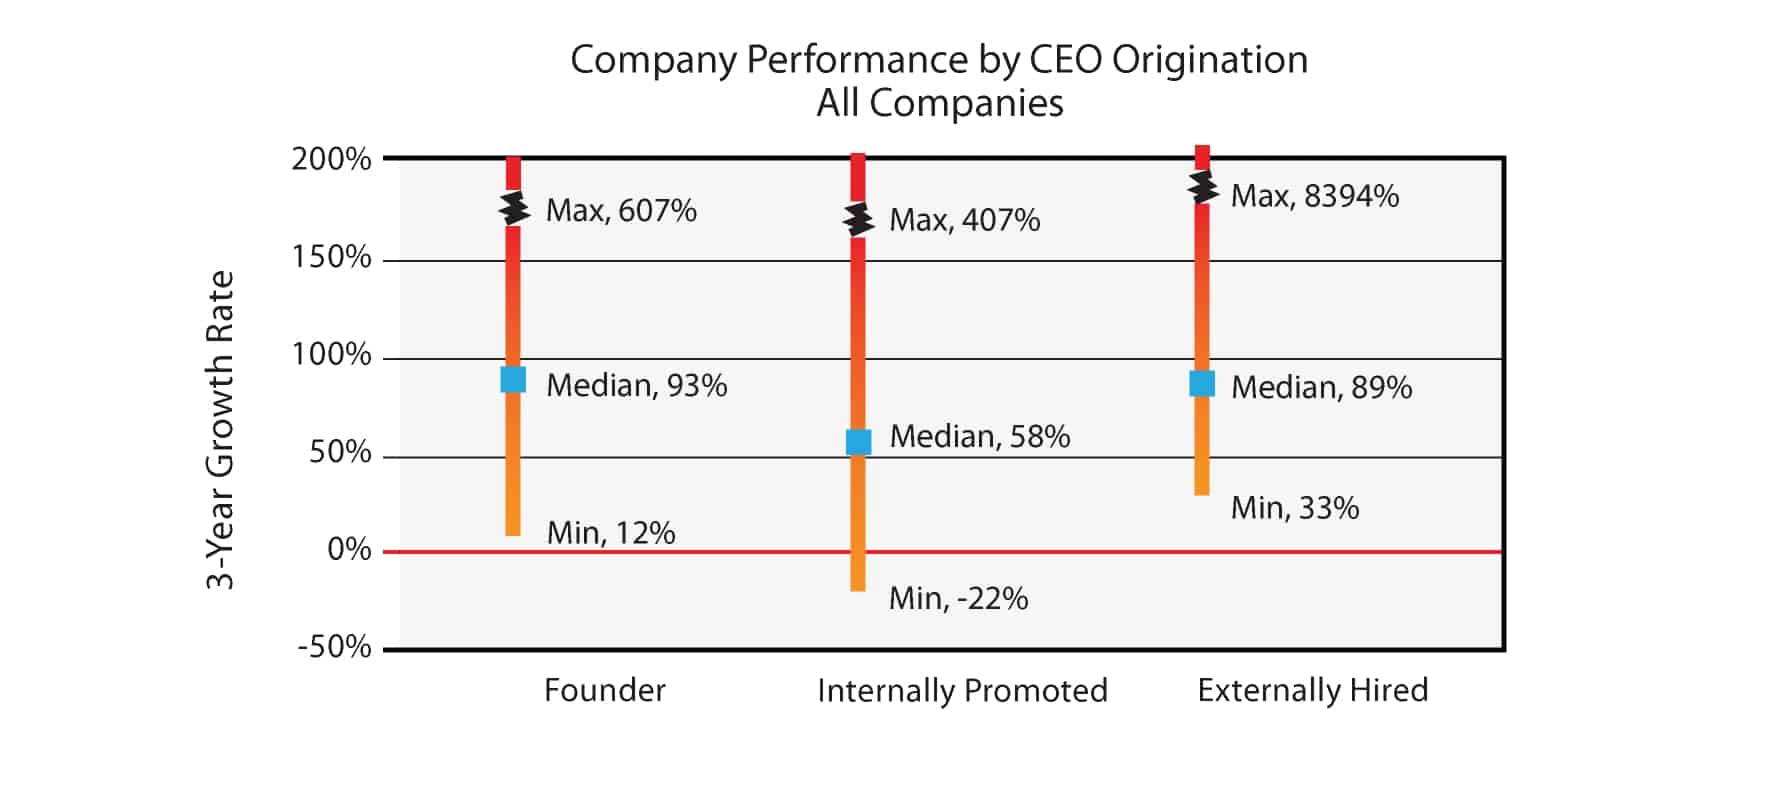 Company performance by CEO origination - founder vs. non-founder